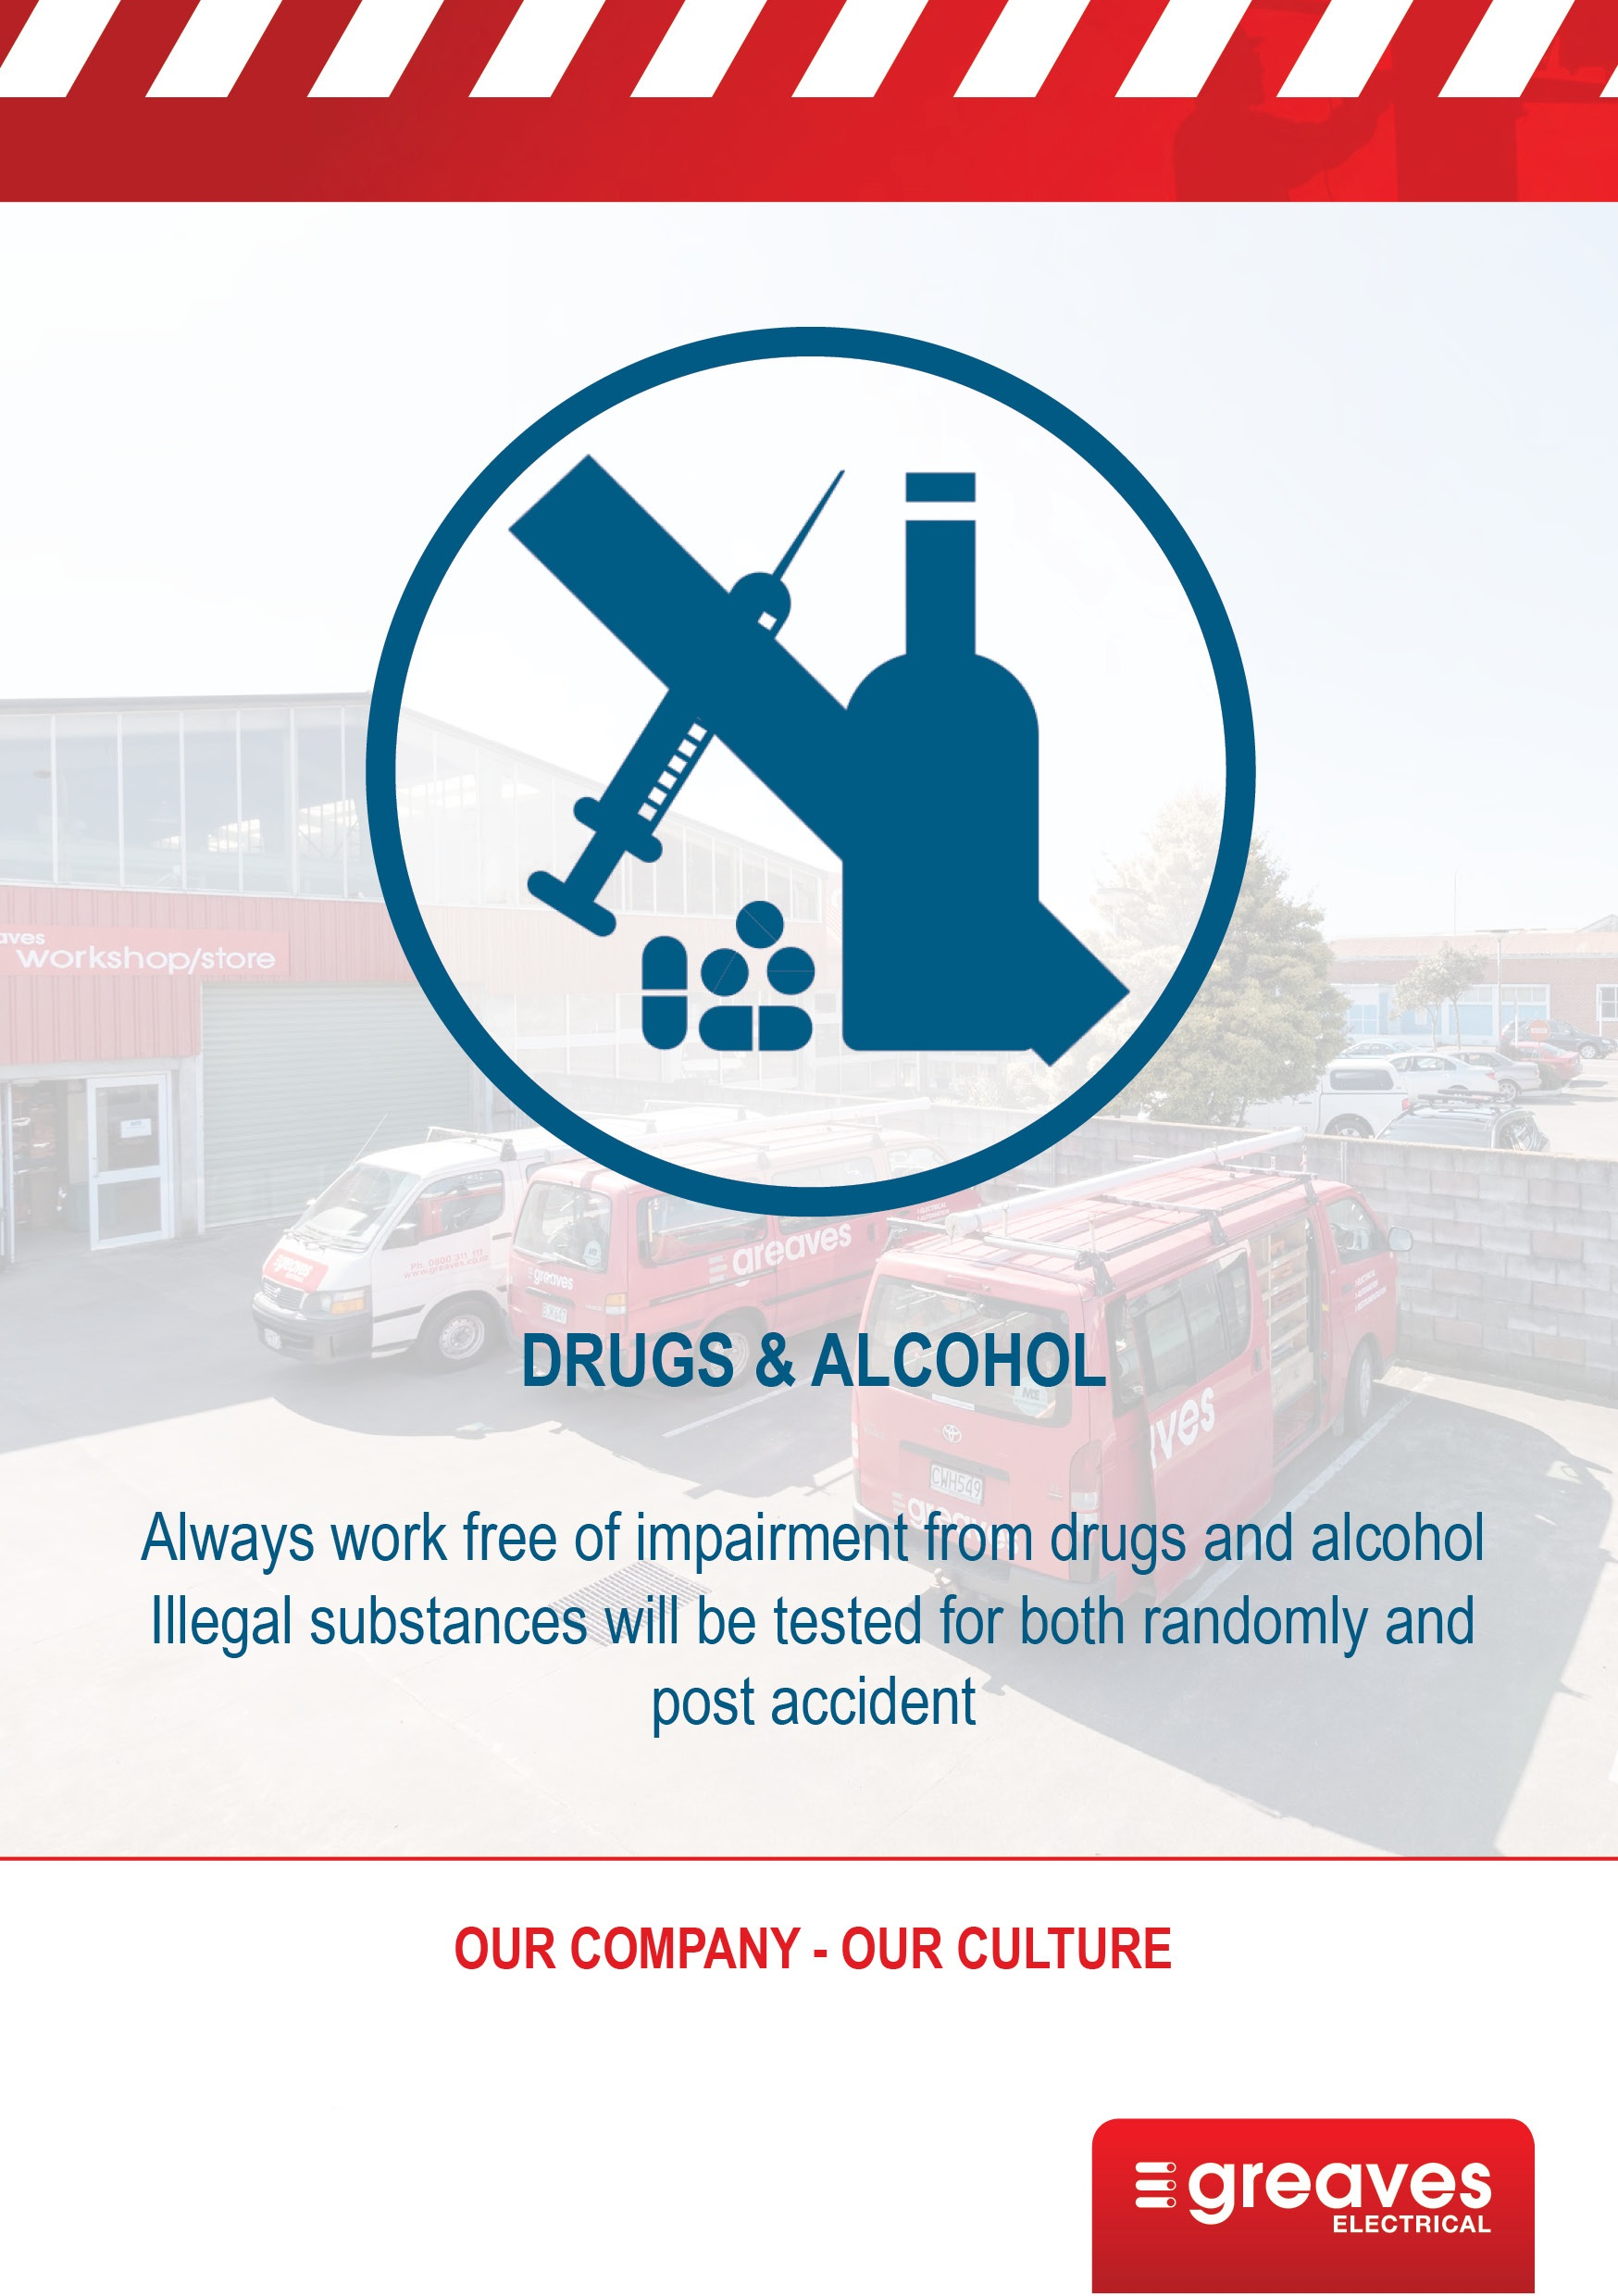 A5 Our Company our culture 7 Drugs & Alcohol.jpg